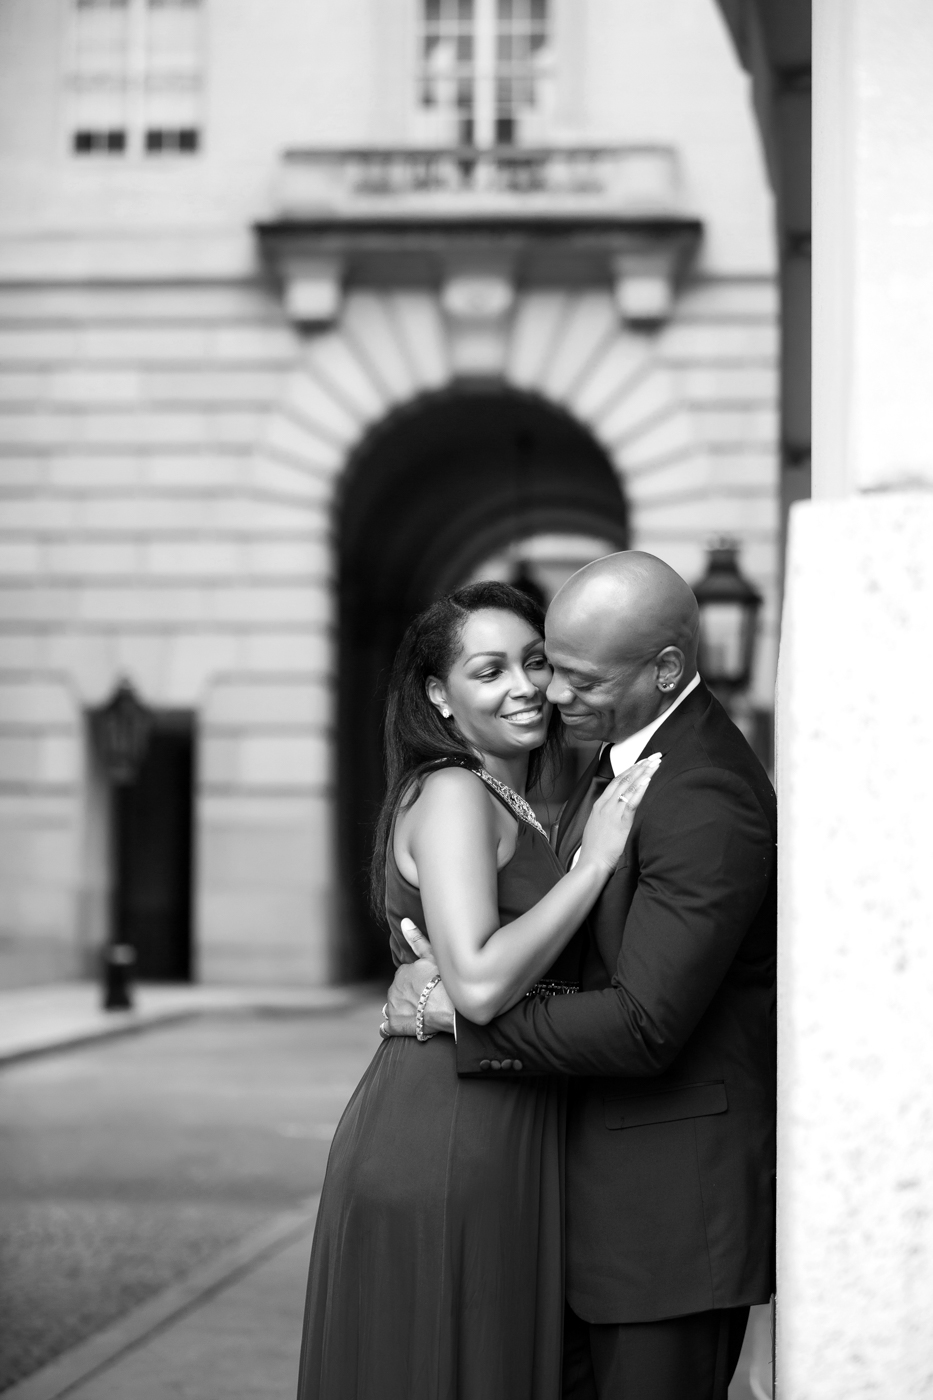 wedding-anniversary-photo-shoot-in-washington-dc-ksenia-pro-photography-26